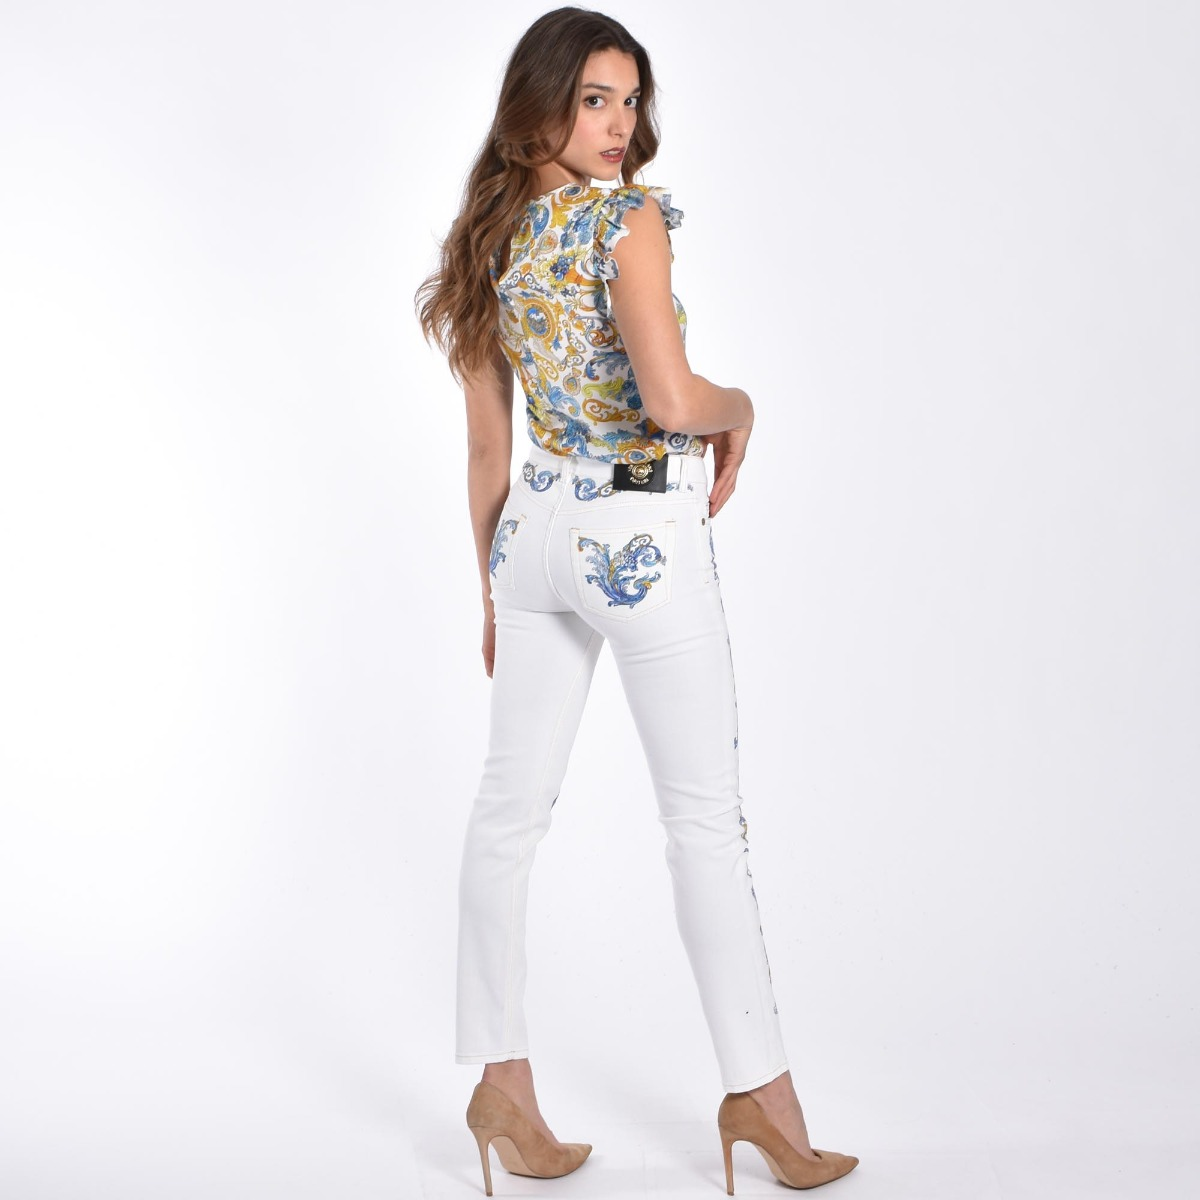 Jeans stampa cameo- Bianco